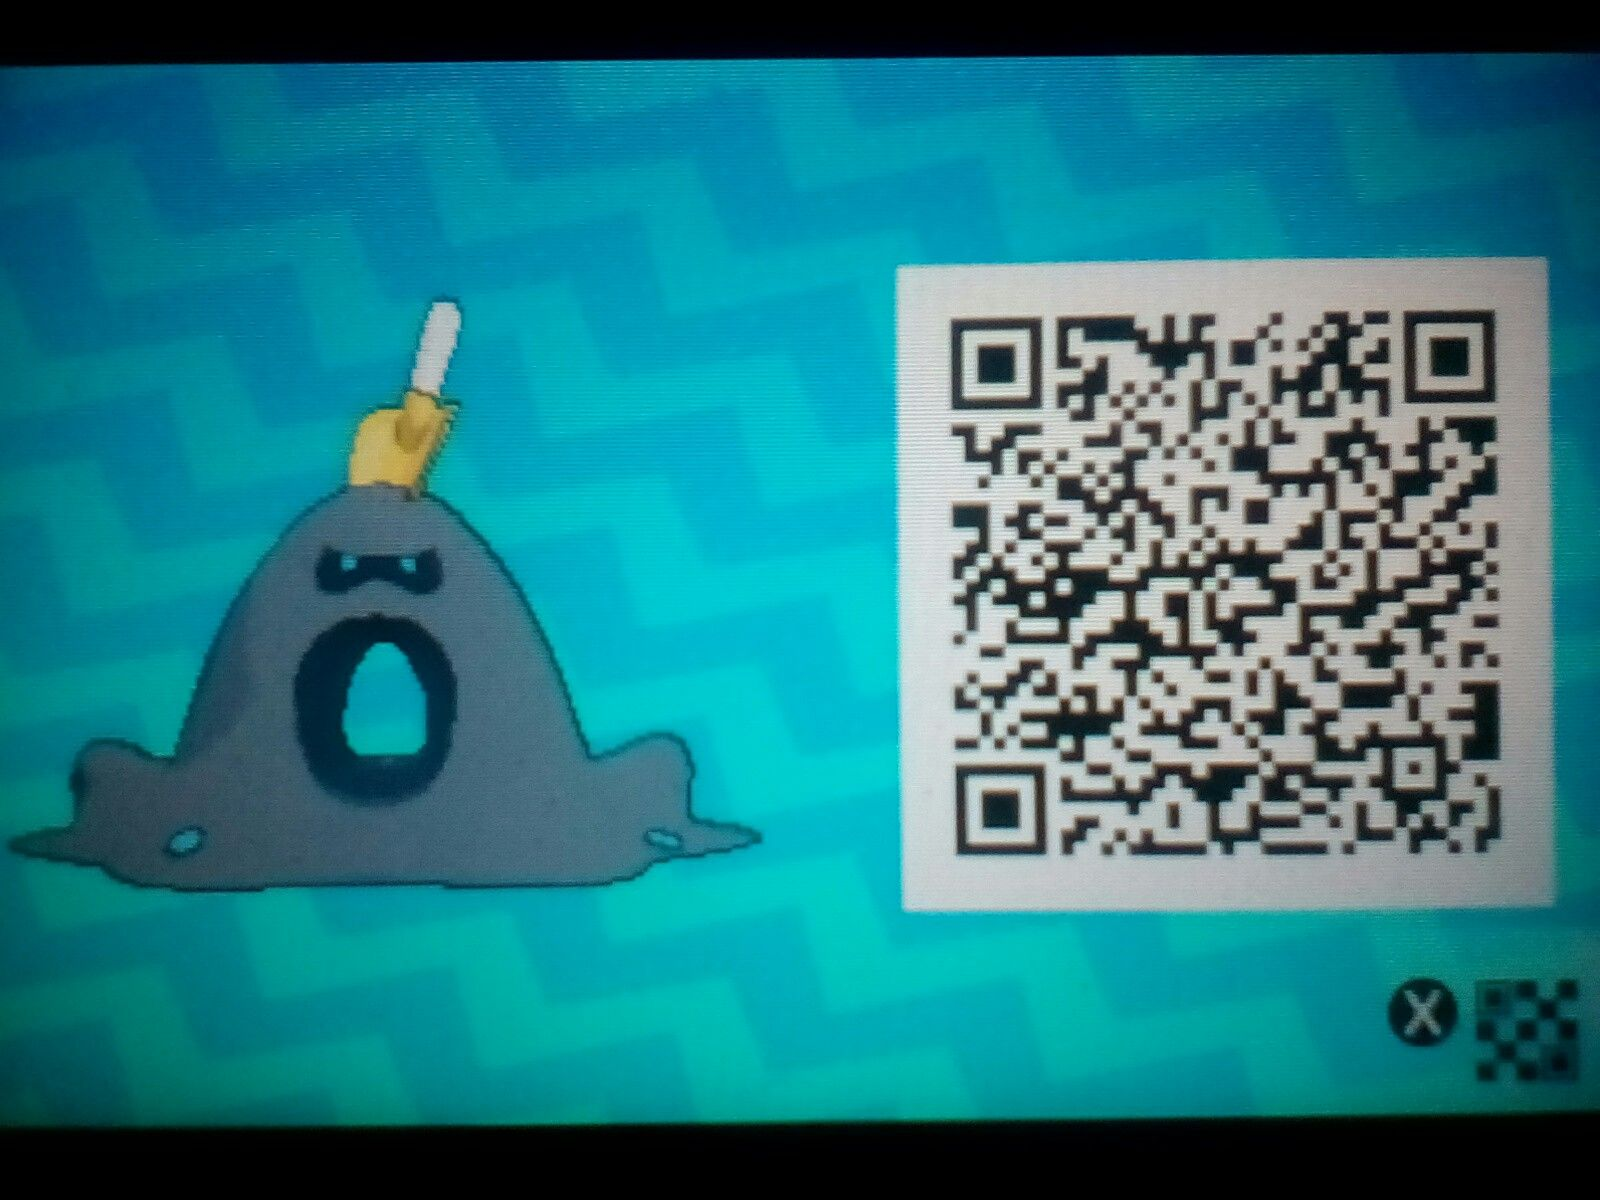 One of my friends let me scan his Shiny Sandygast QR Code